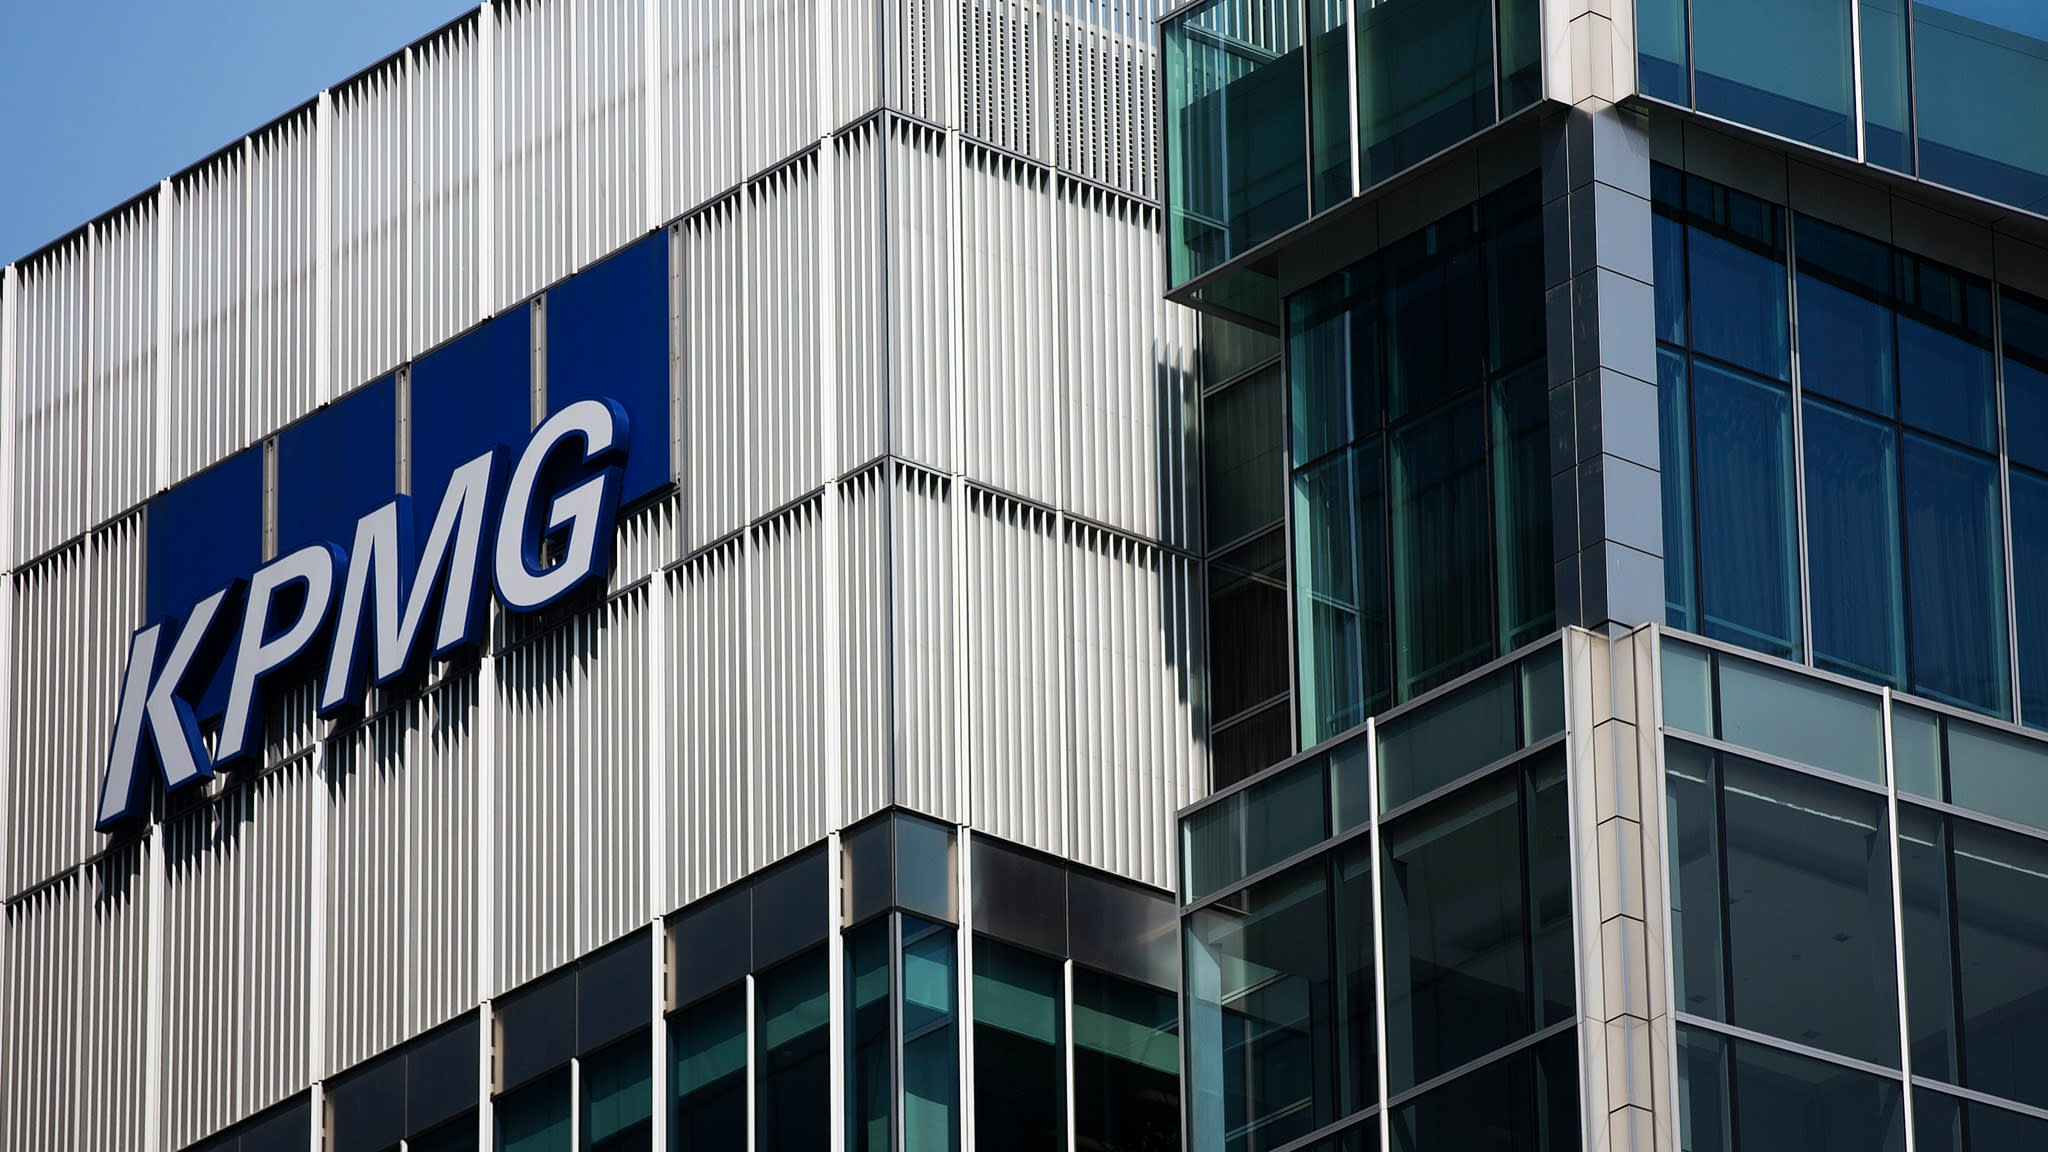 KPMG appoints risk management chief after accounting scandals